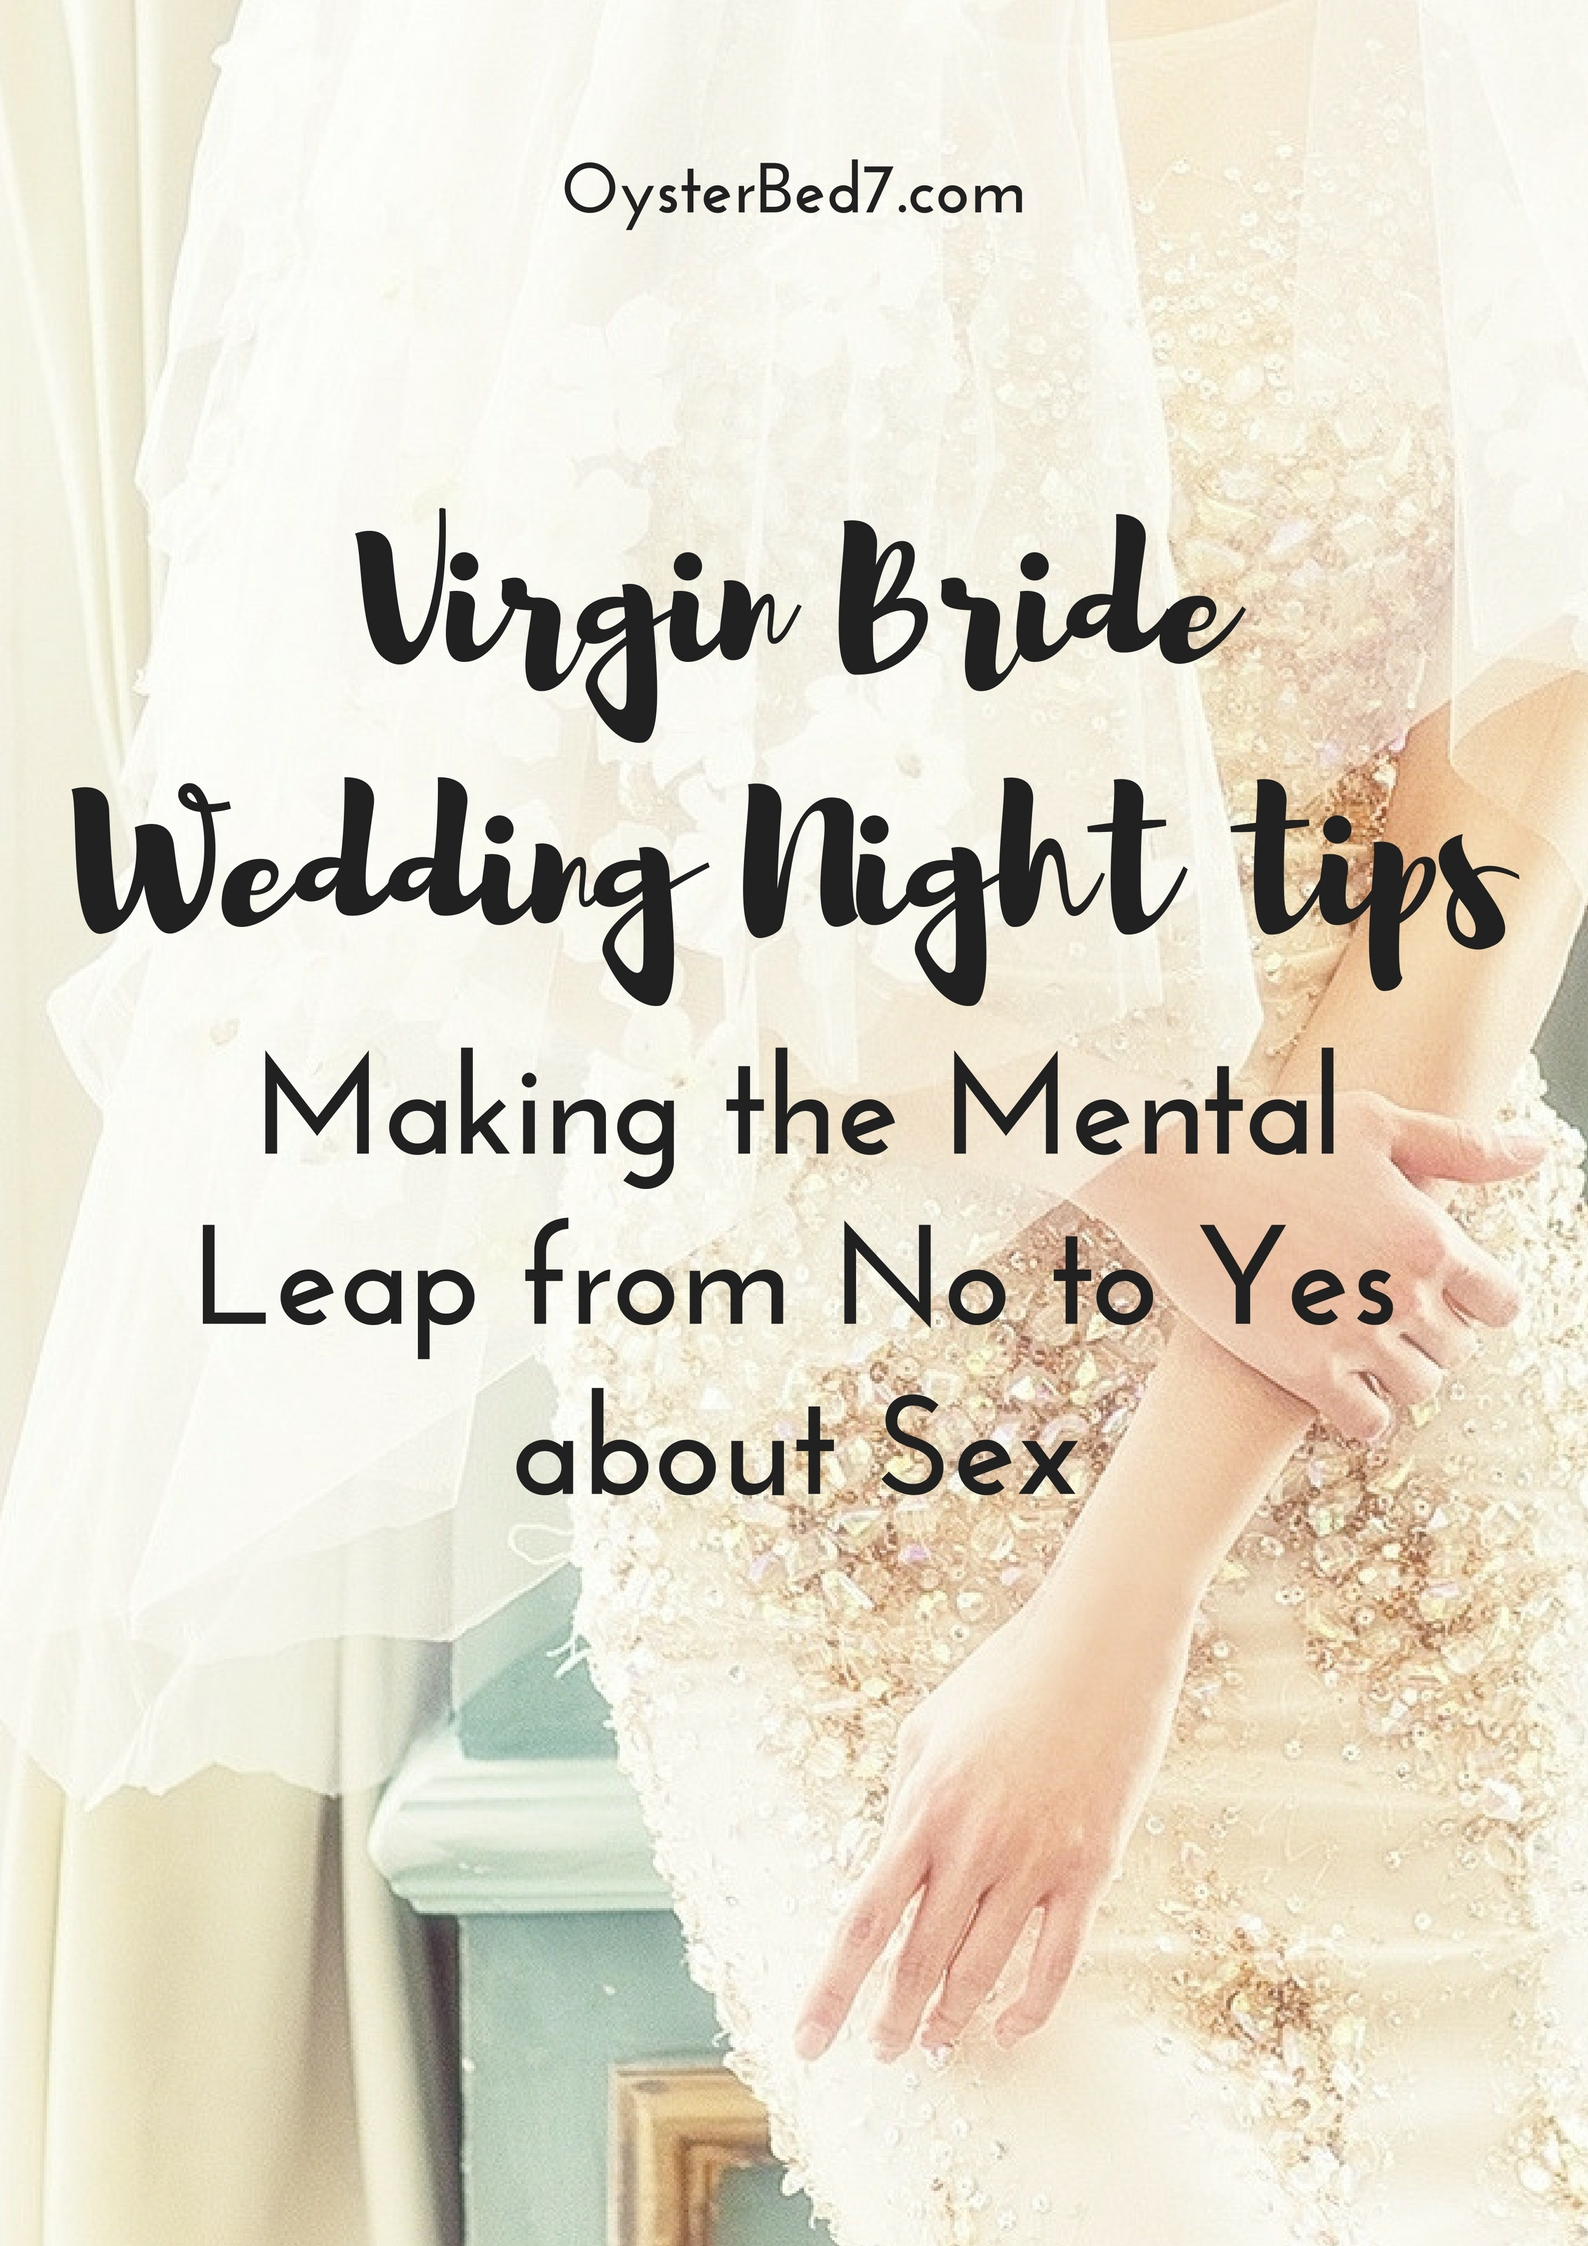 Virgin Bride, Flip Your Mental Switch About Sex From No To Yes